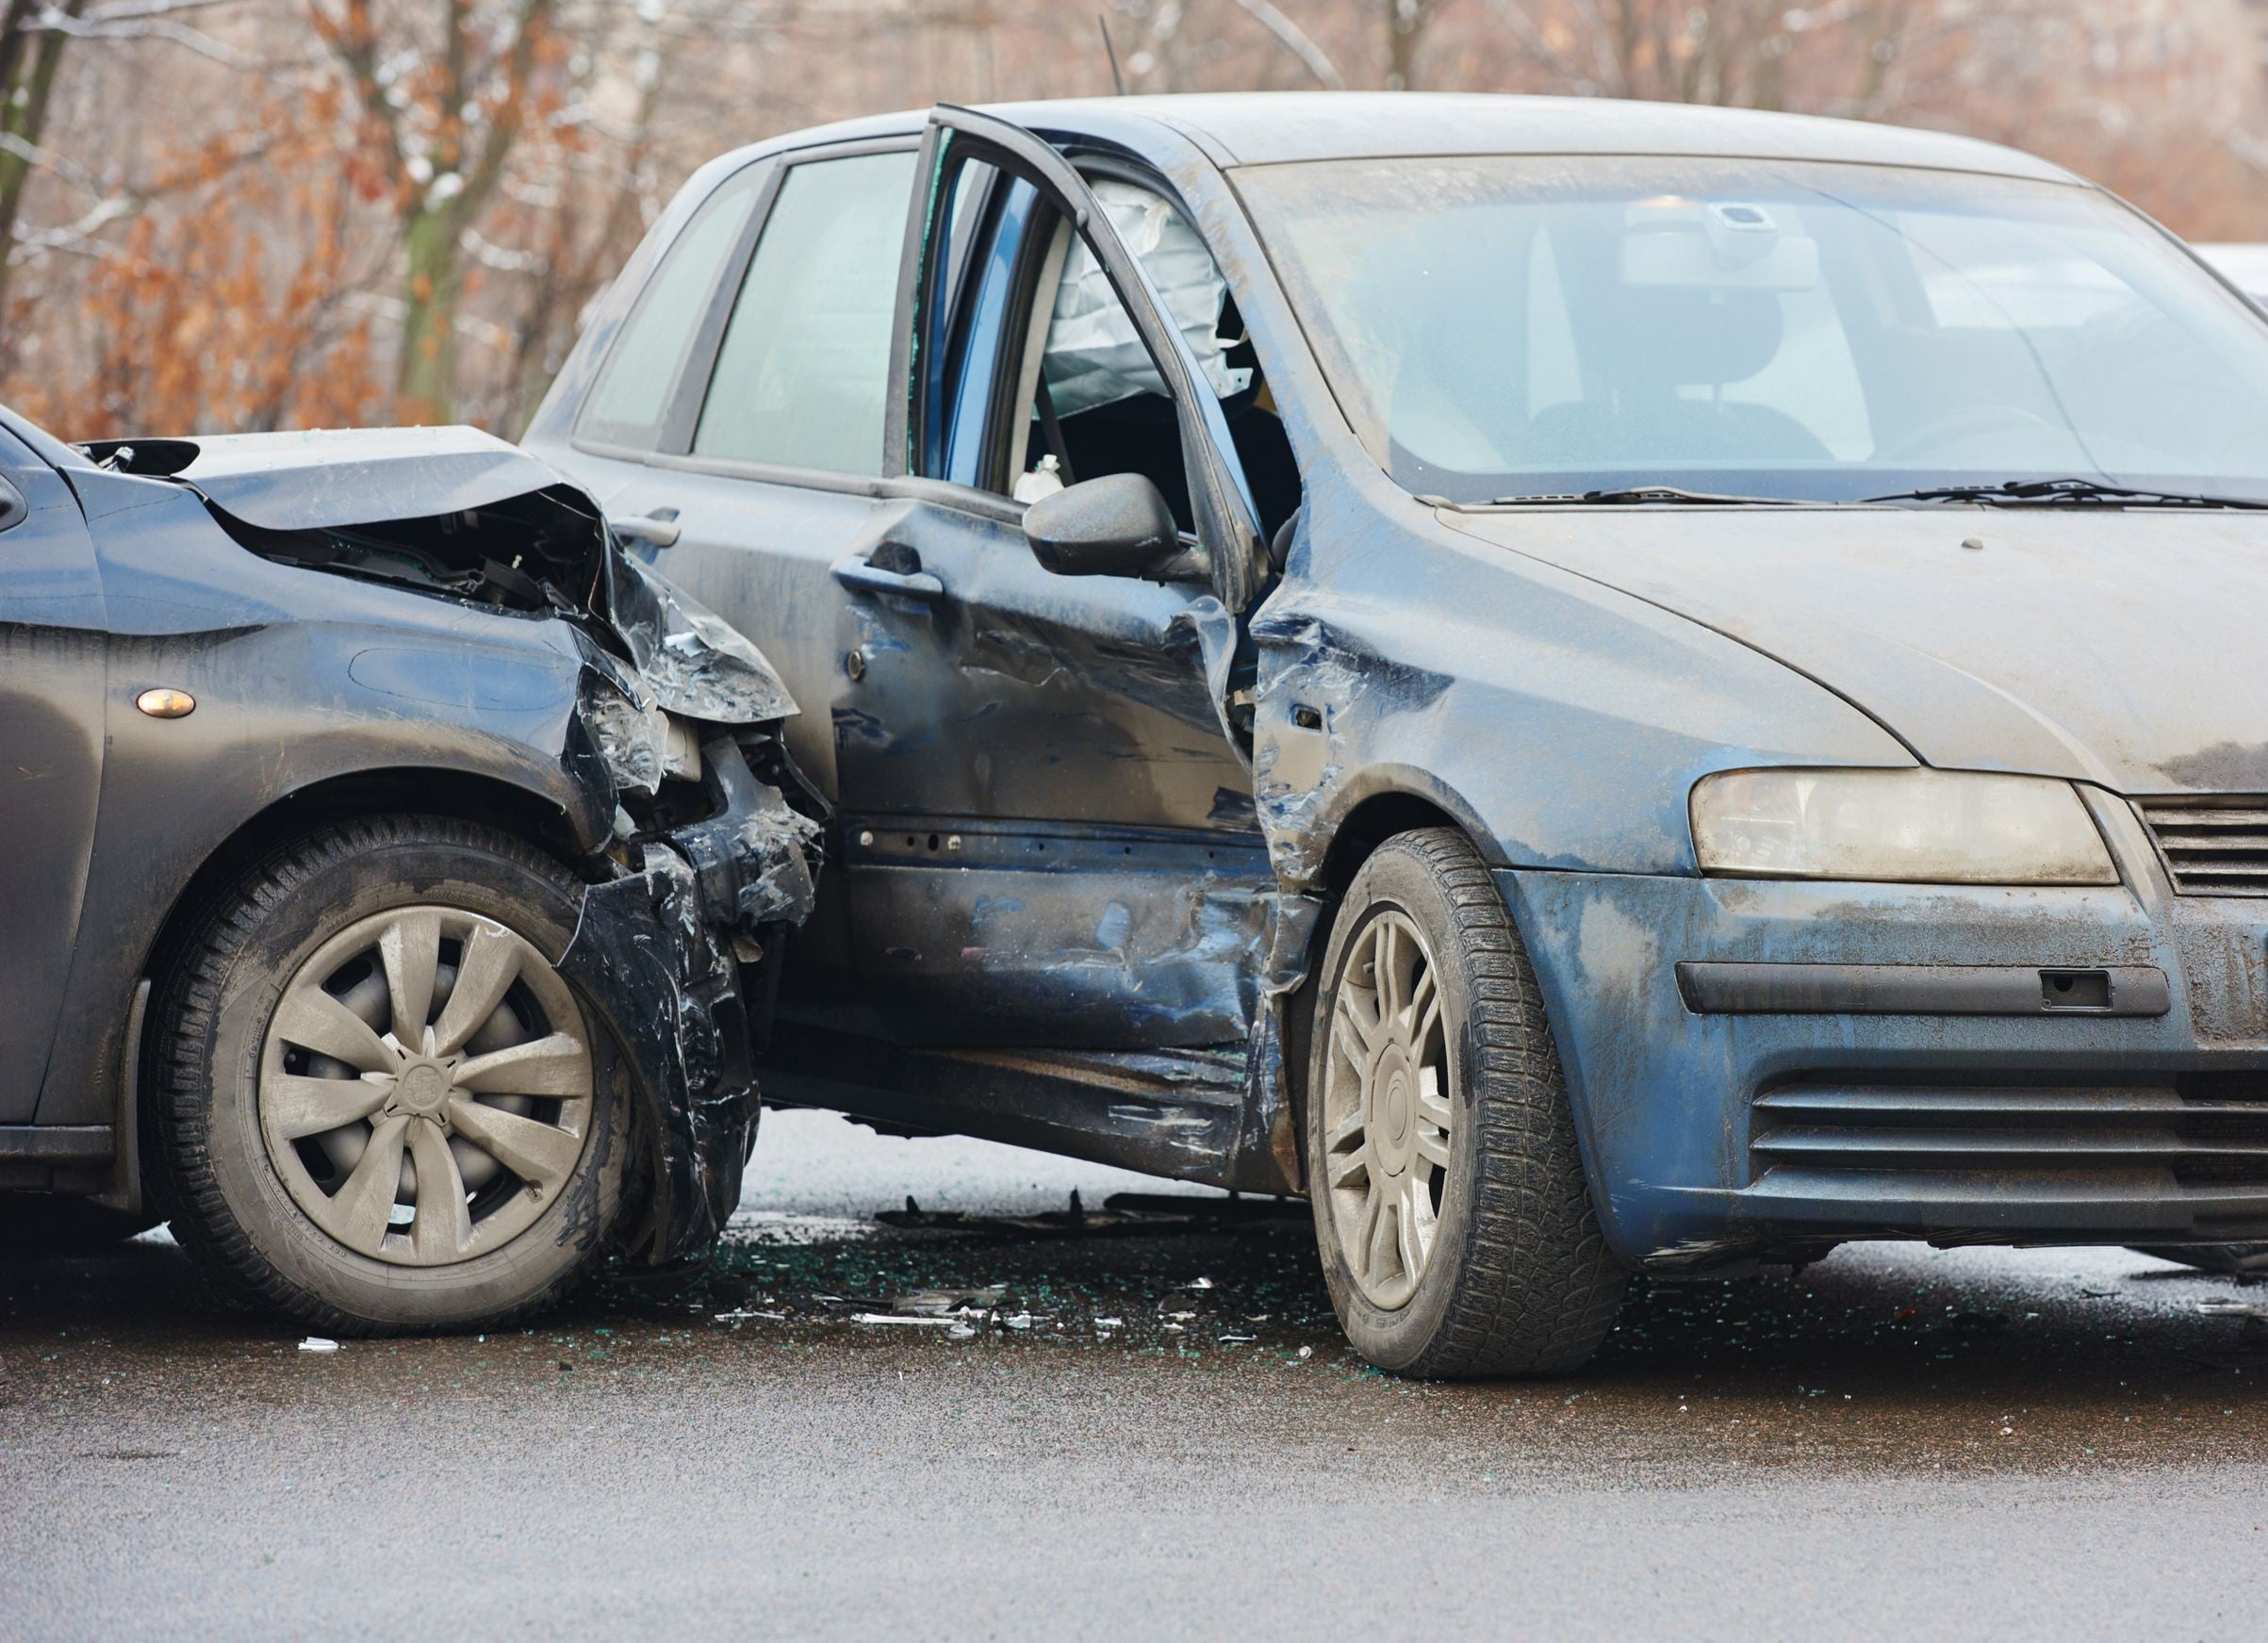 The Best Apps to Help After a Car Accident